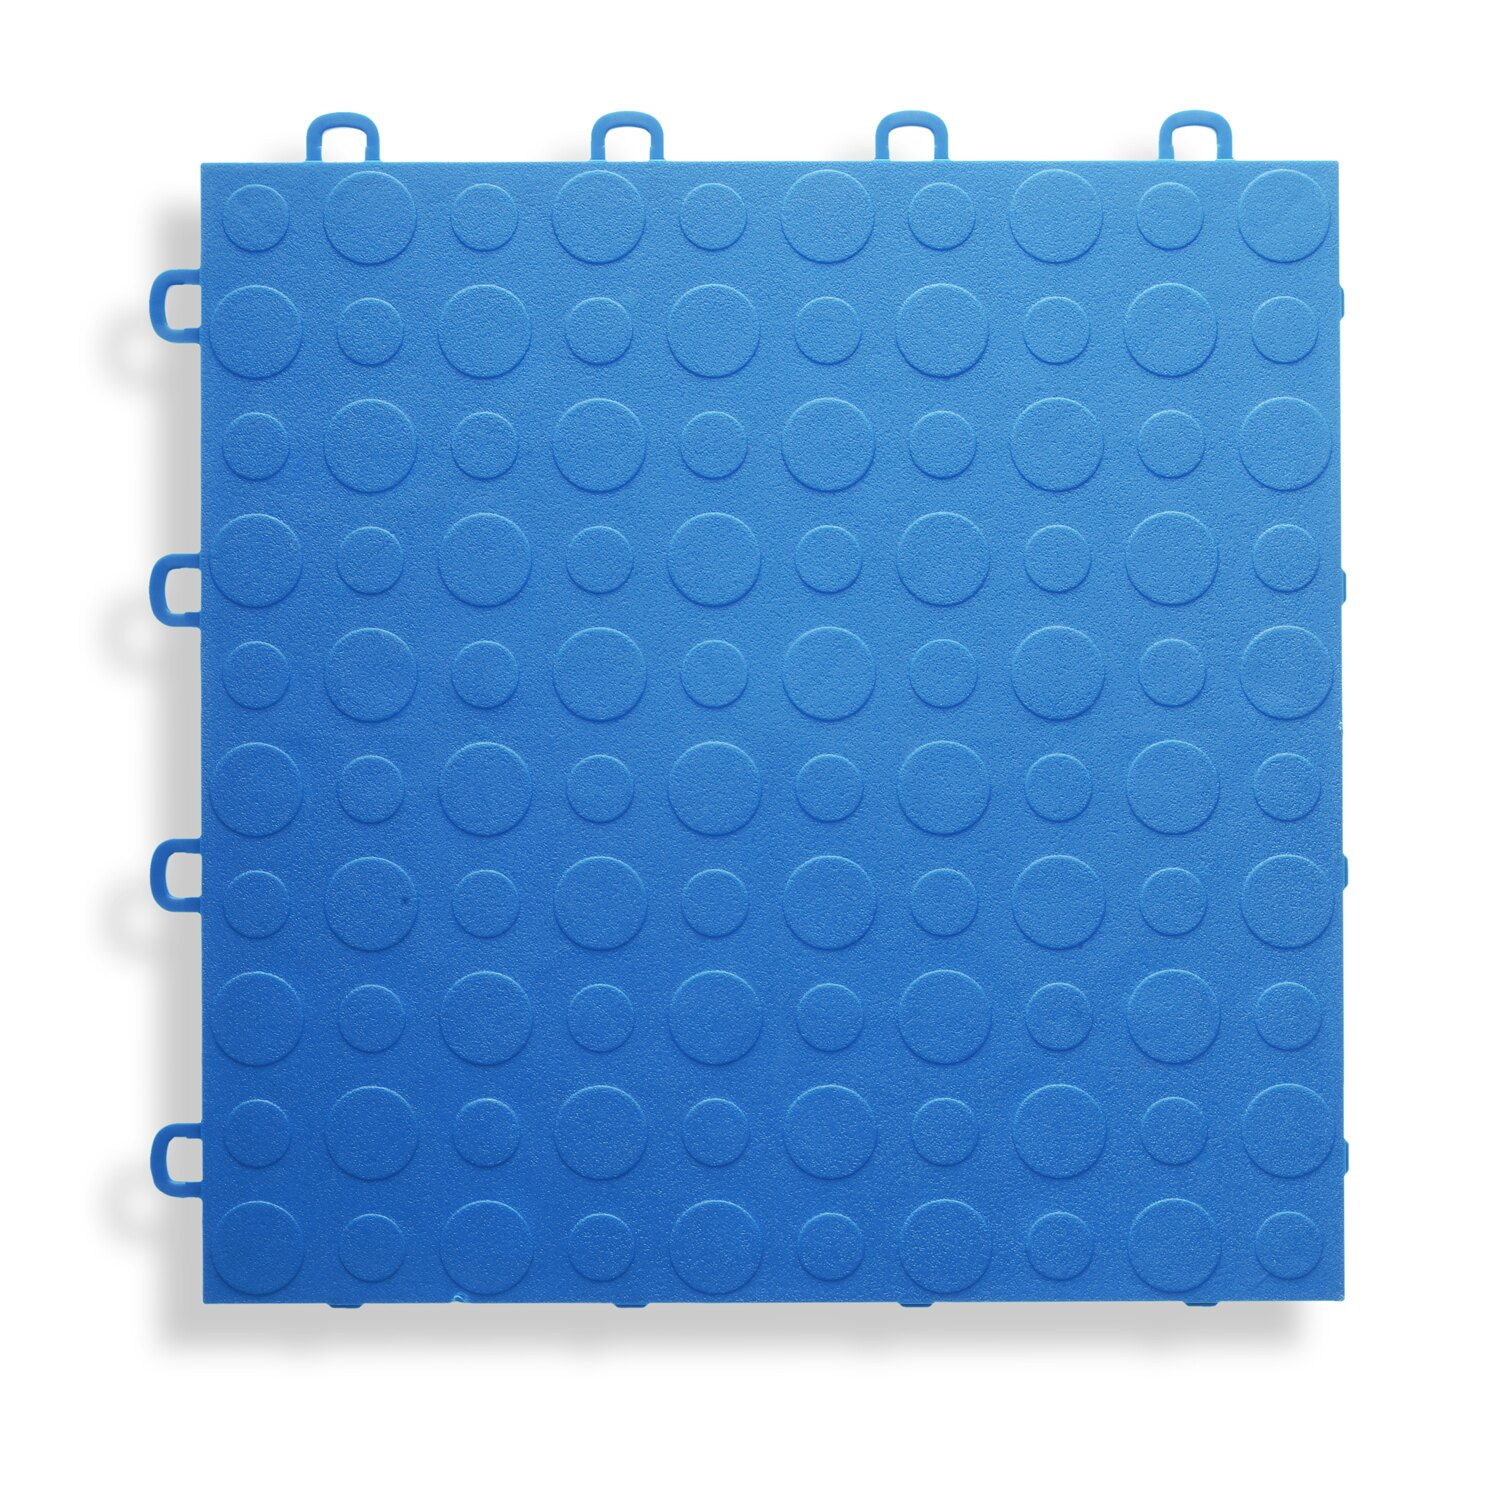 Garage Flooring Interlocking Tiles Coin